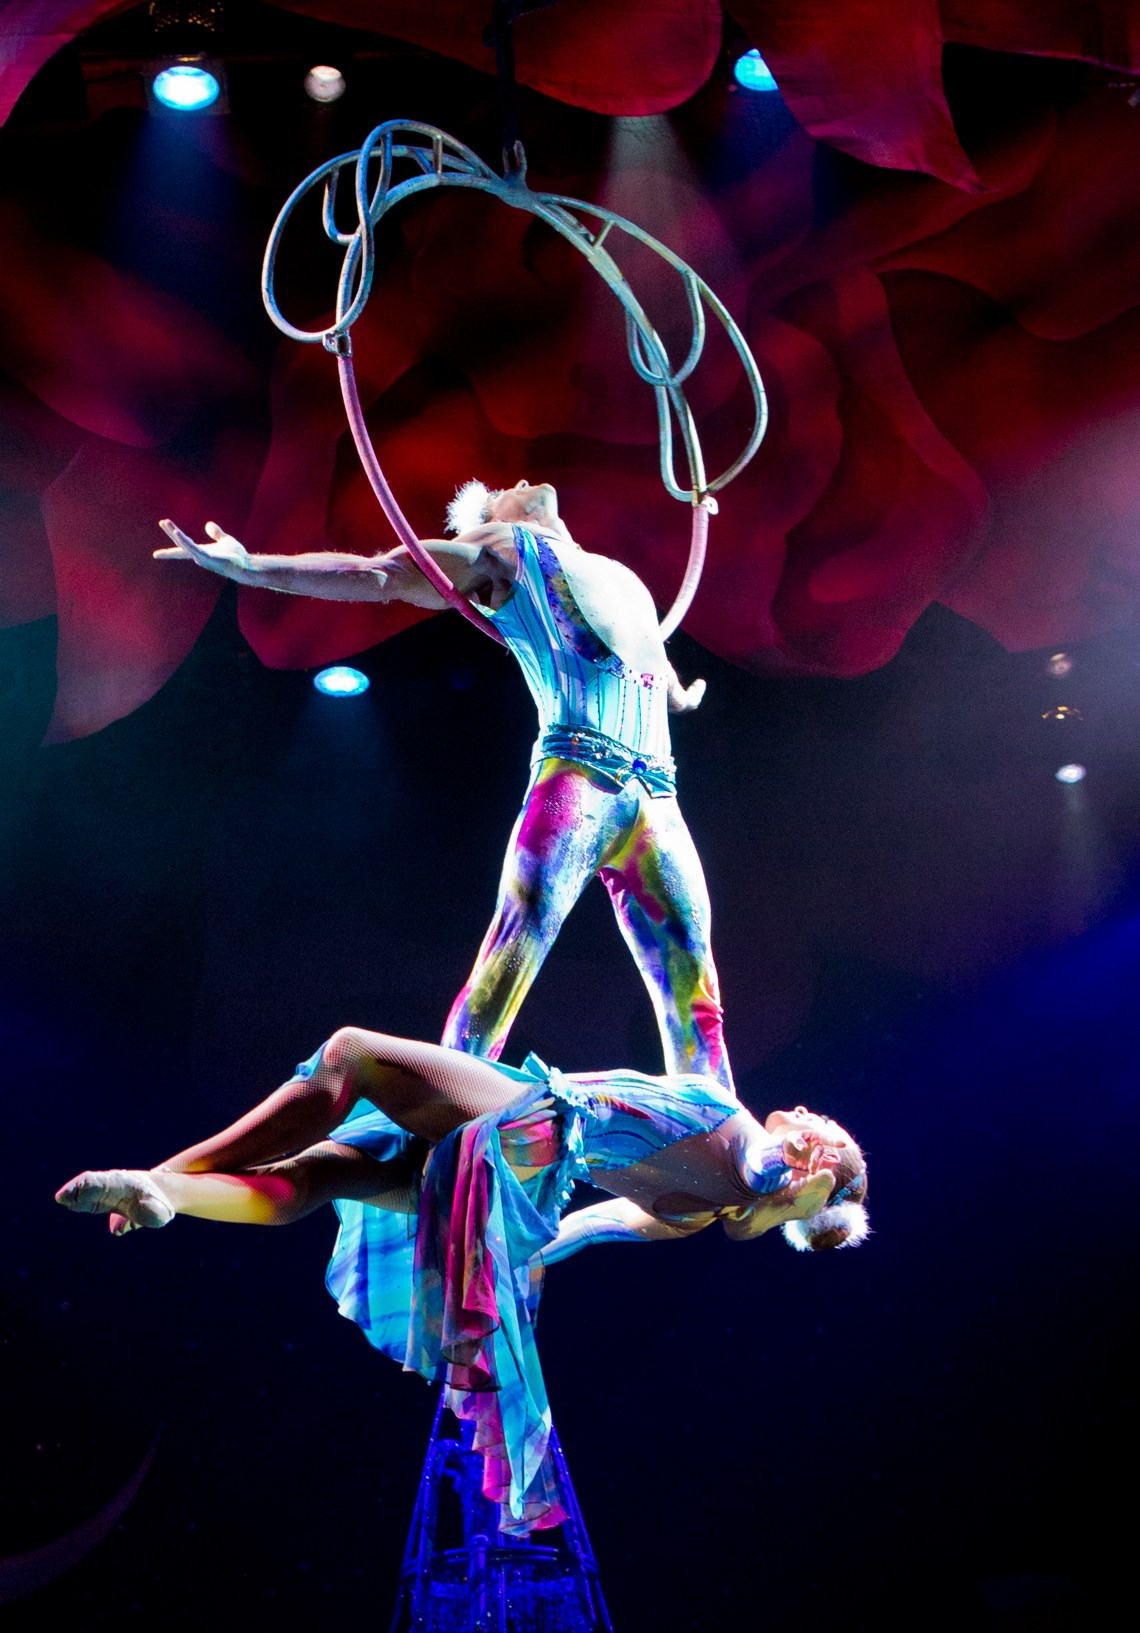 Cirque Dreams Holidaze at the Kings Theatre in Brooklyn, NY. It will run for six (6) performances from November 29, 2018 – December 2, 2018.